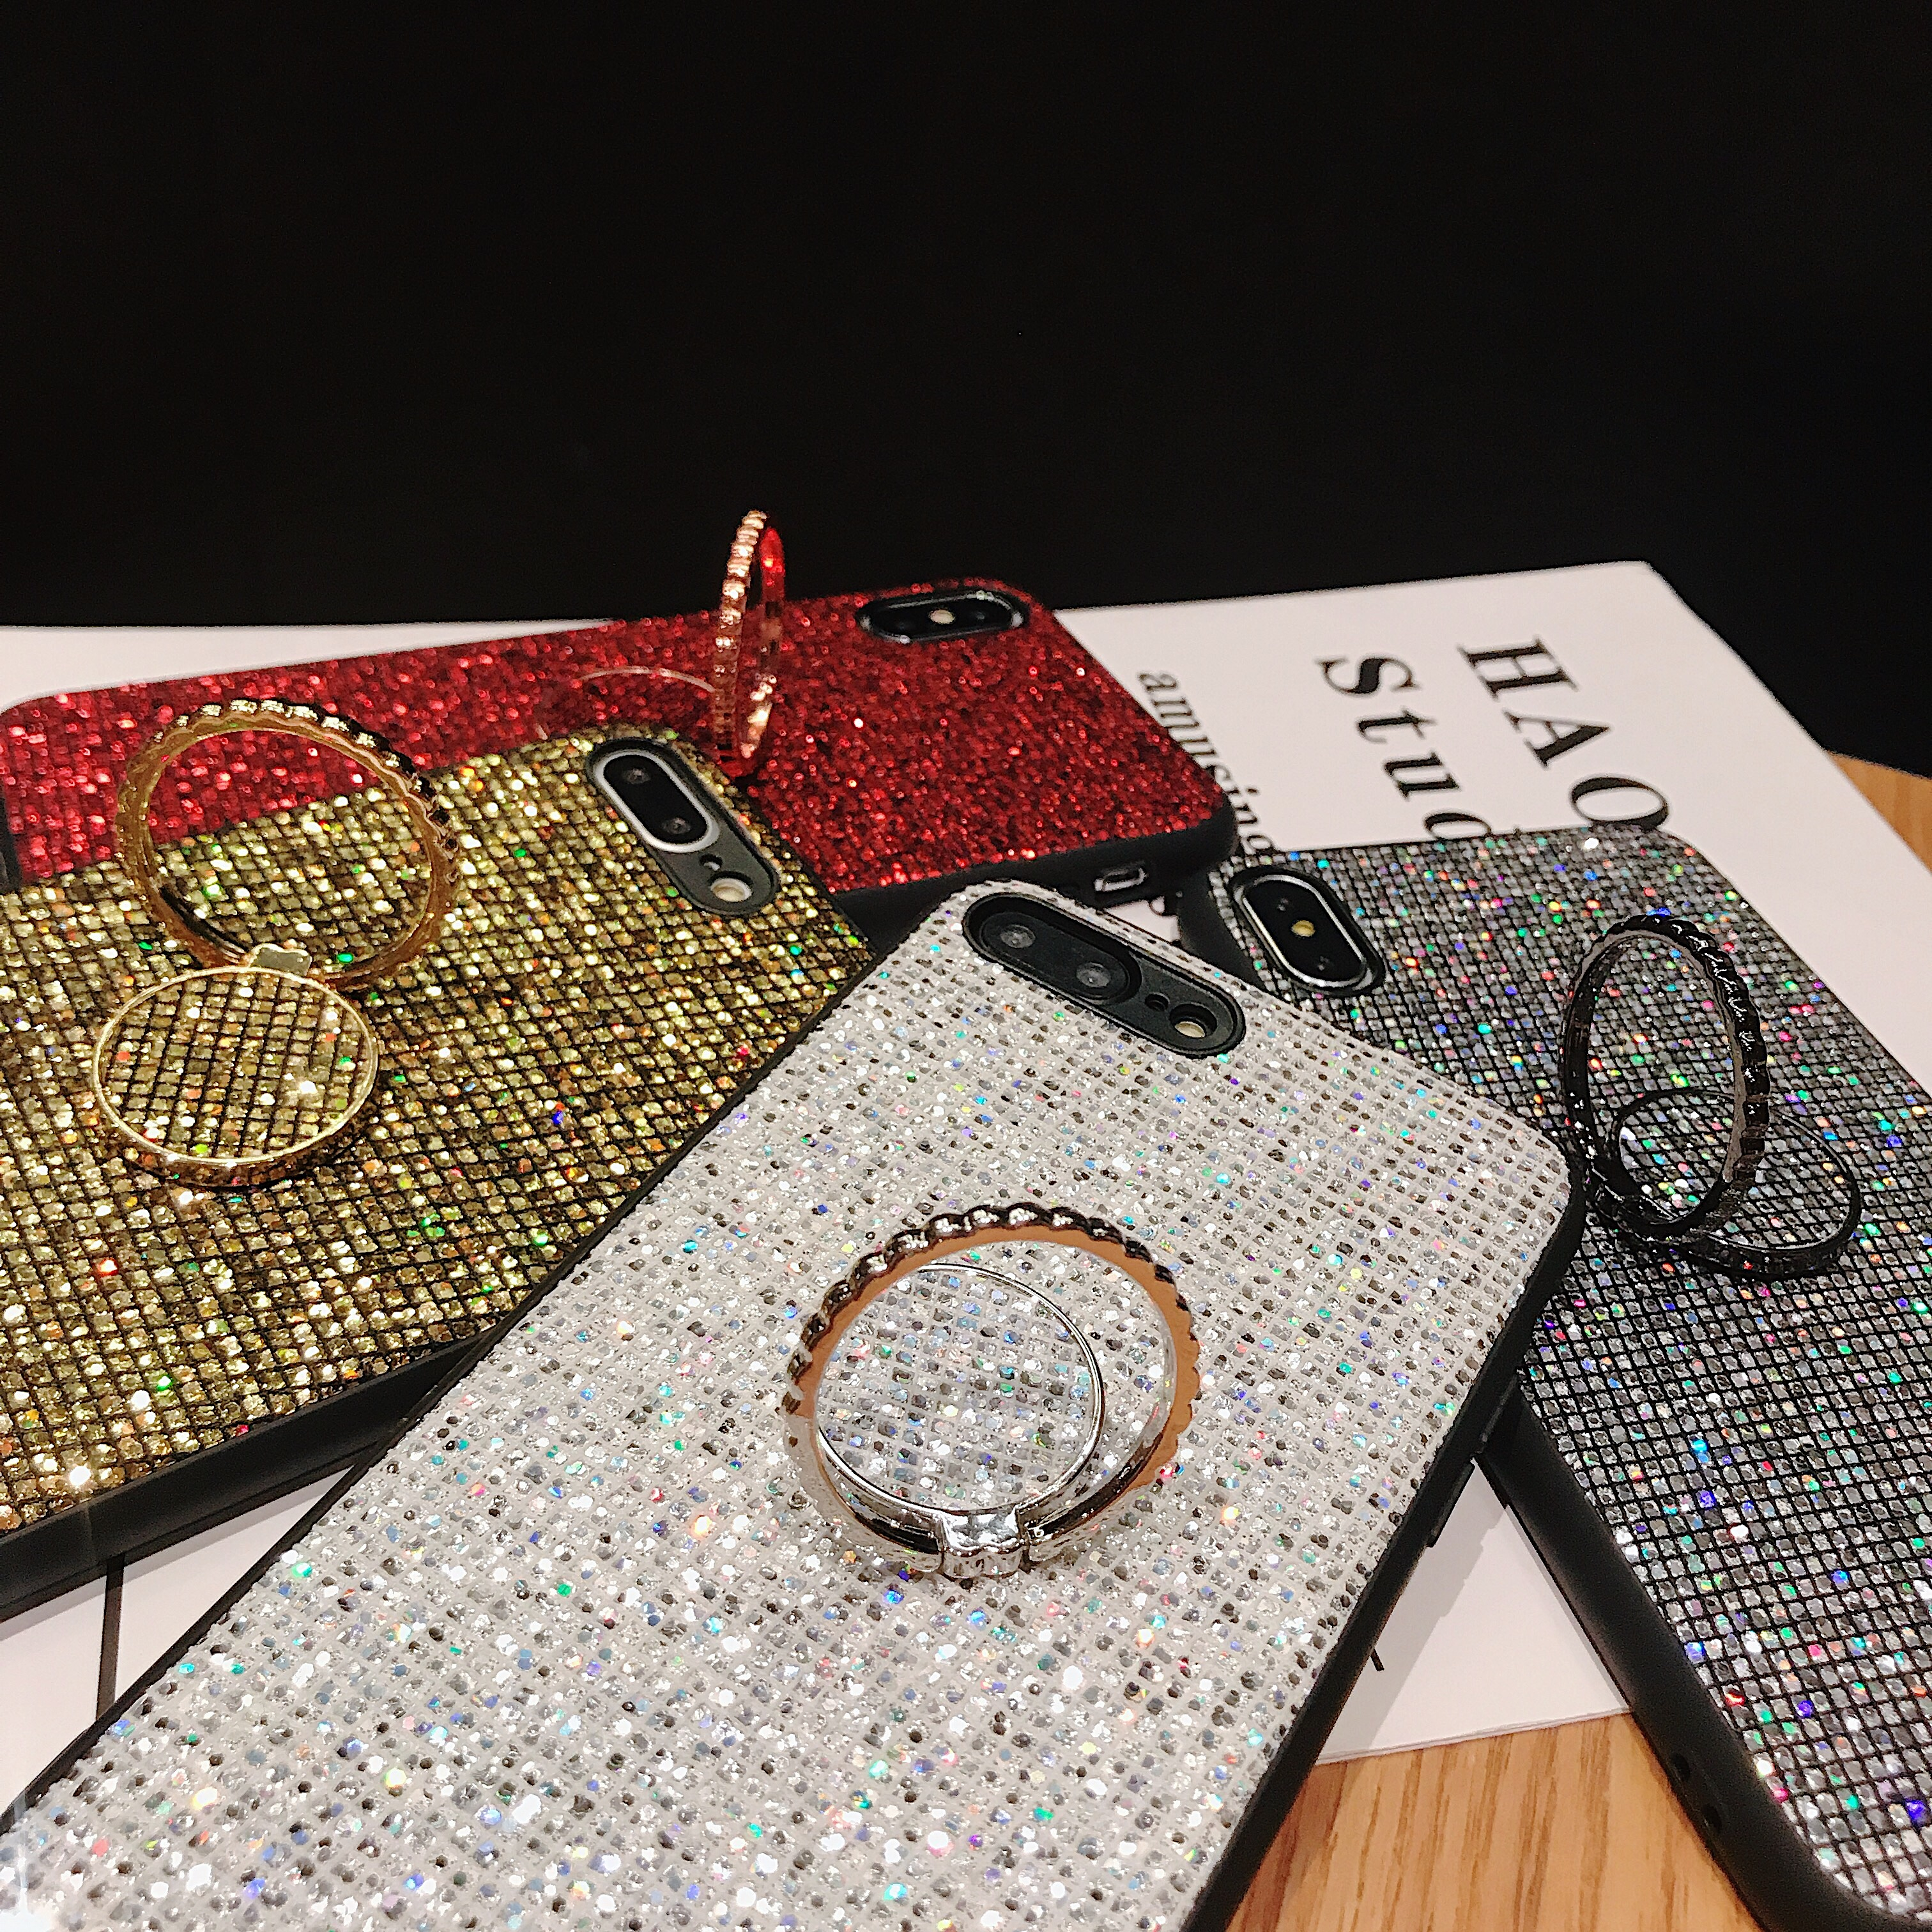 Luxury Shiny Case For Samsung Galaxy A71 51 70 <font><b>50</b></font> <font><b>40</b></font> 30 20 10 80 90 a20e A10S A20 S M10 20 30 with Backet Funda Bling Coque image